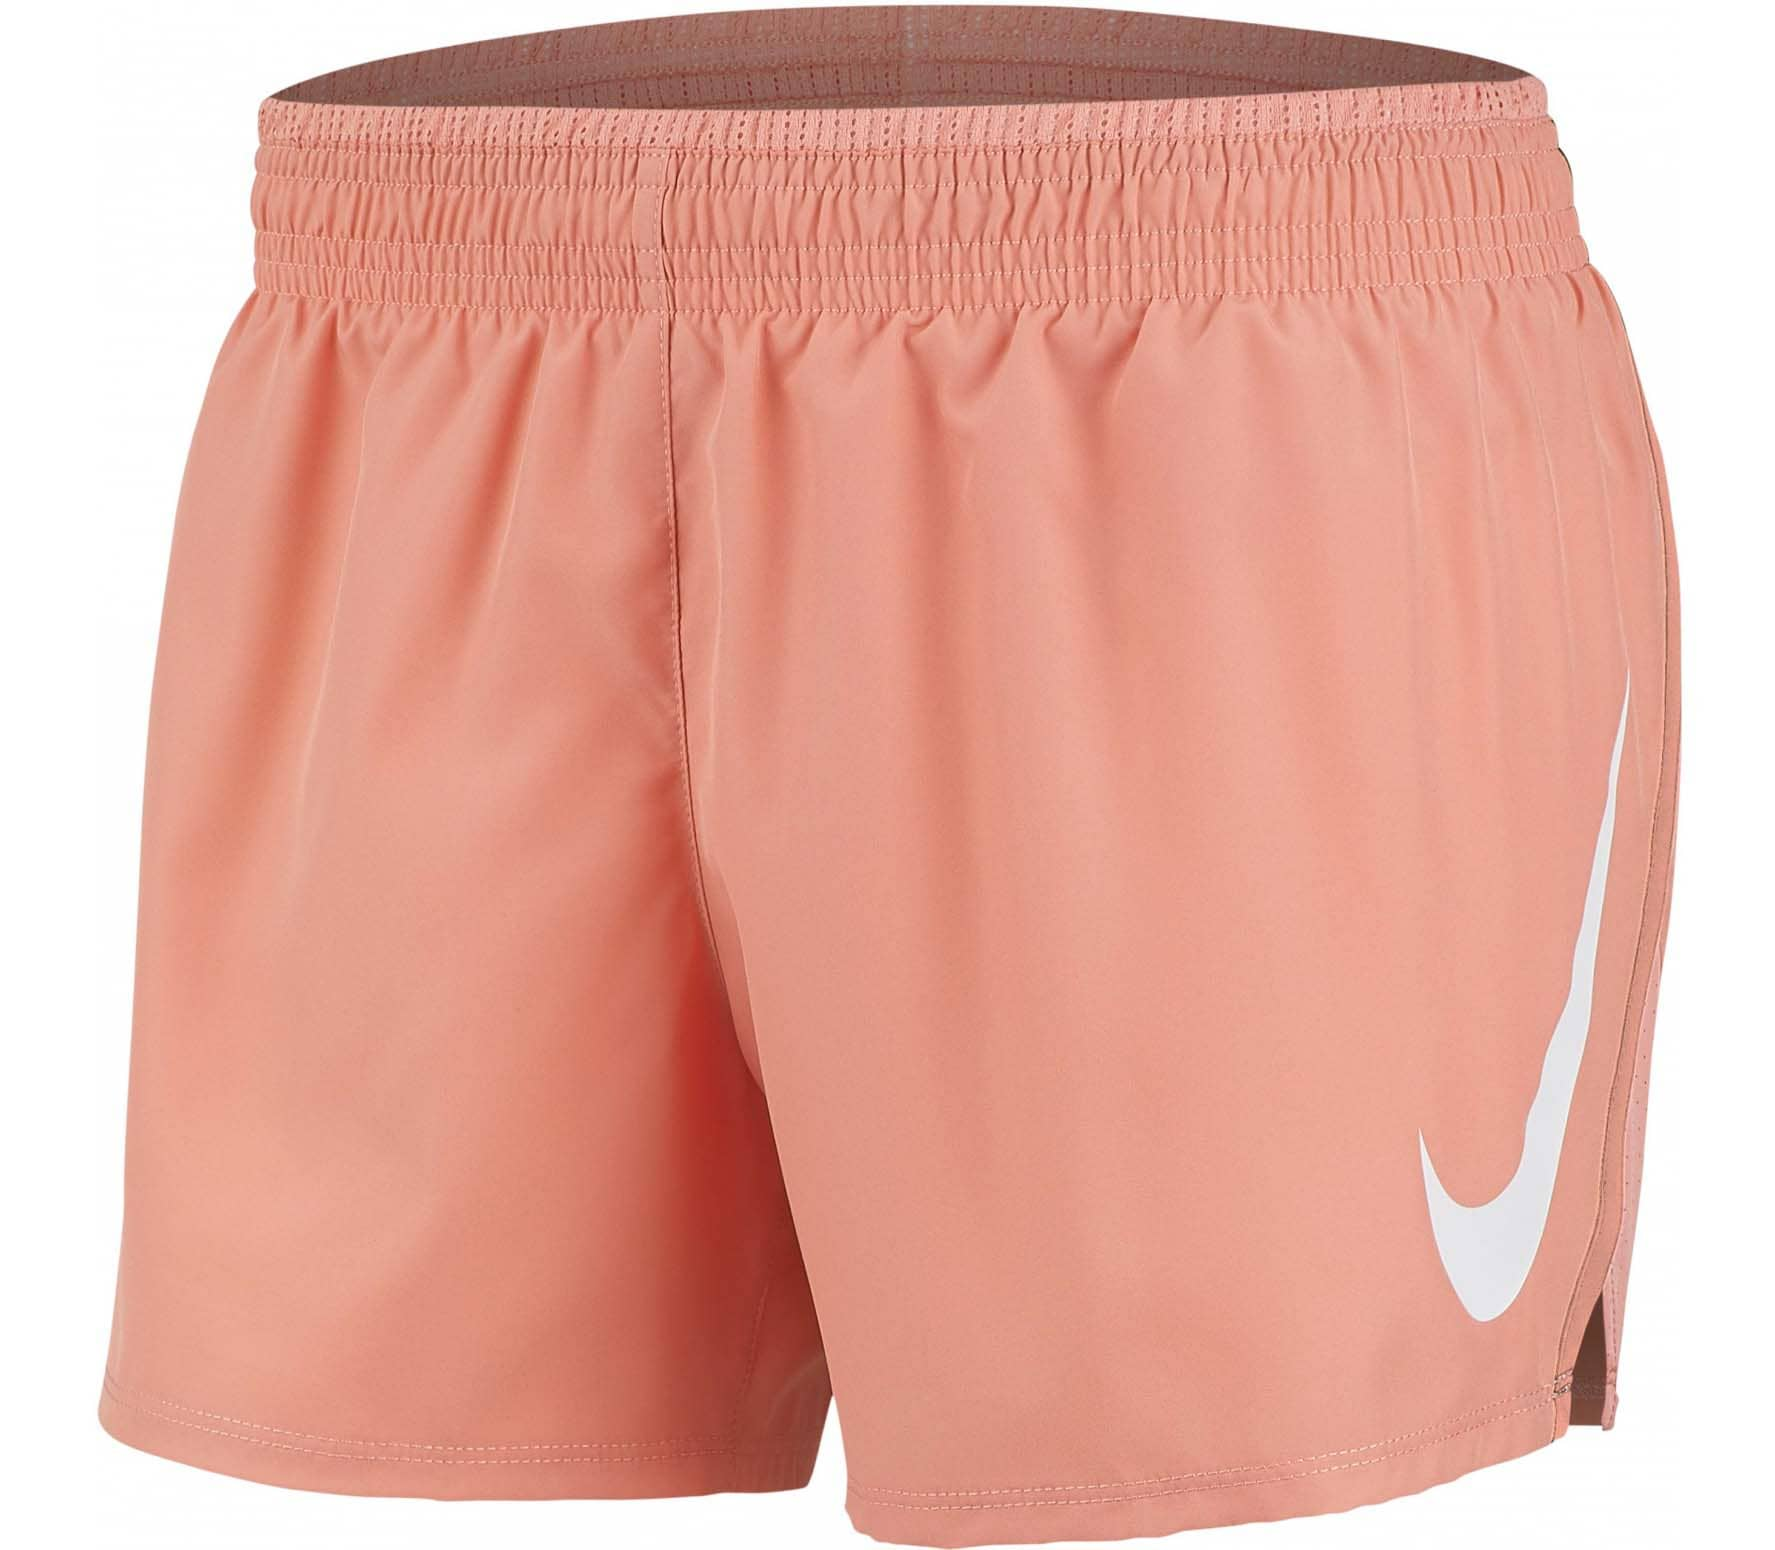 446fa2ee3 Nike Swoosh Women Training Shorts pink - buy it at the Keller Sports online  shop